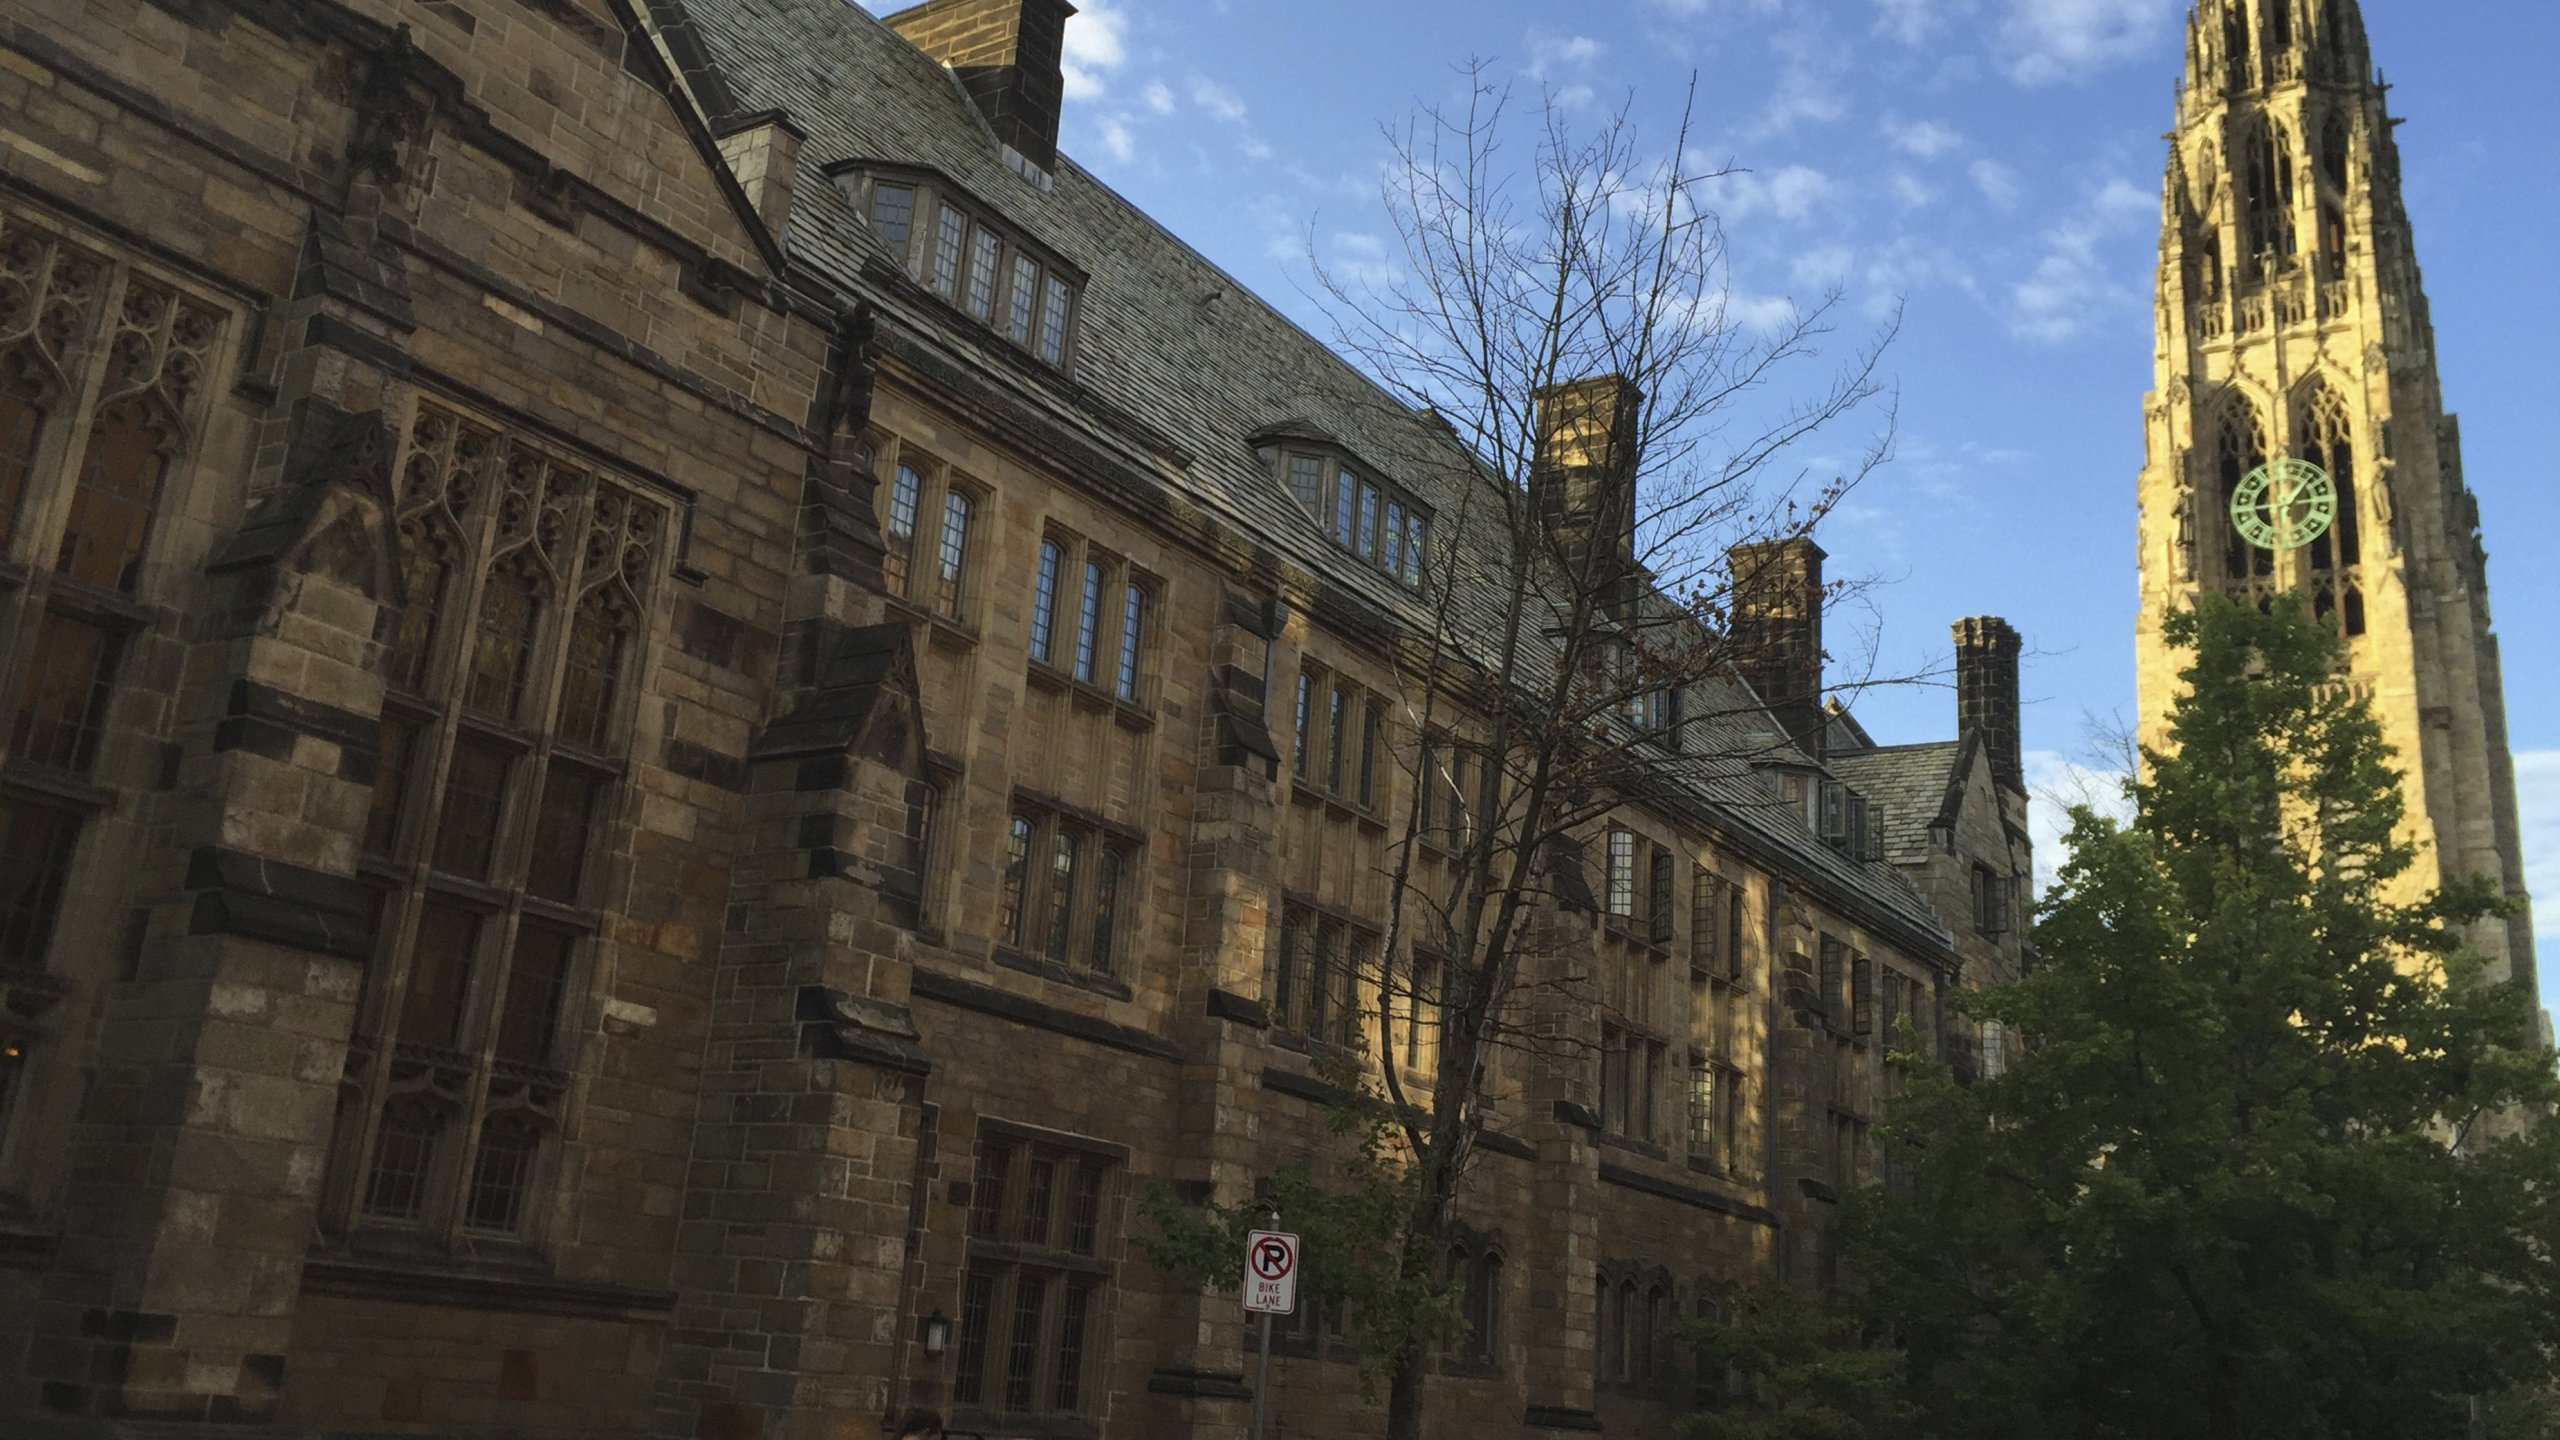 The Yale University campus is shown in this undated photo. (Credit: Beth Harpaz/Associated Press)